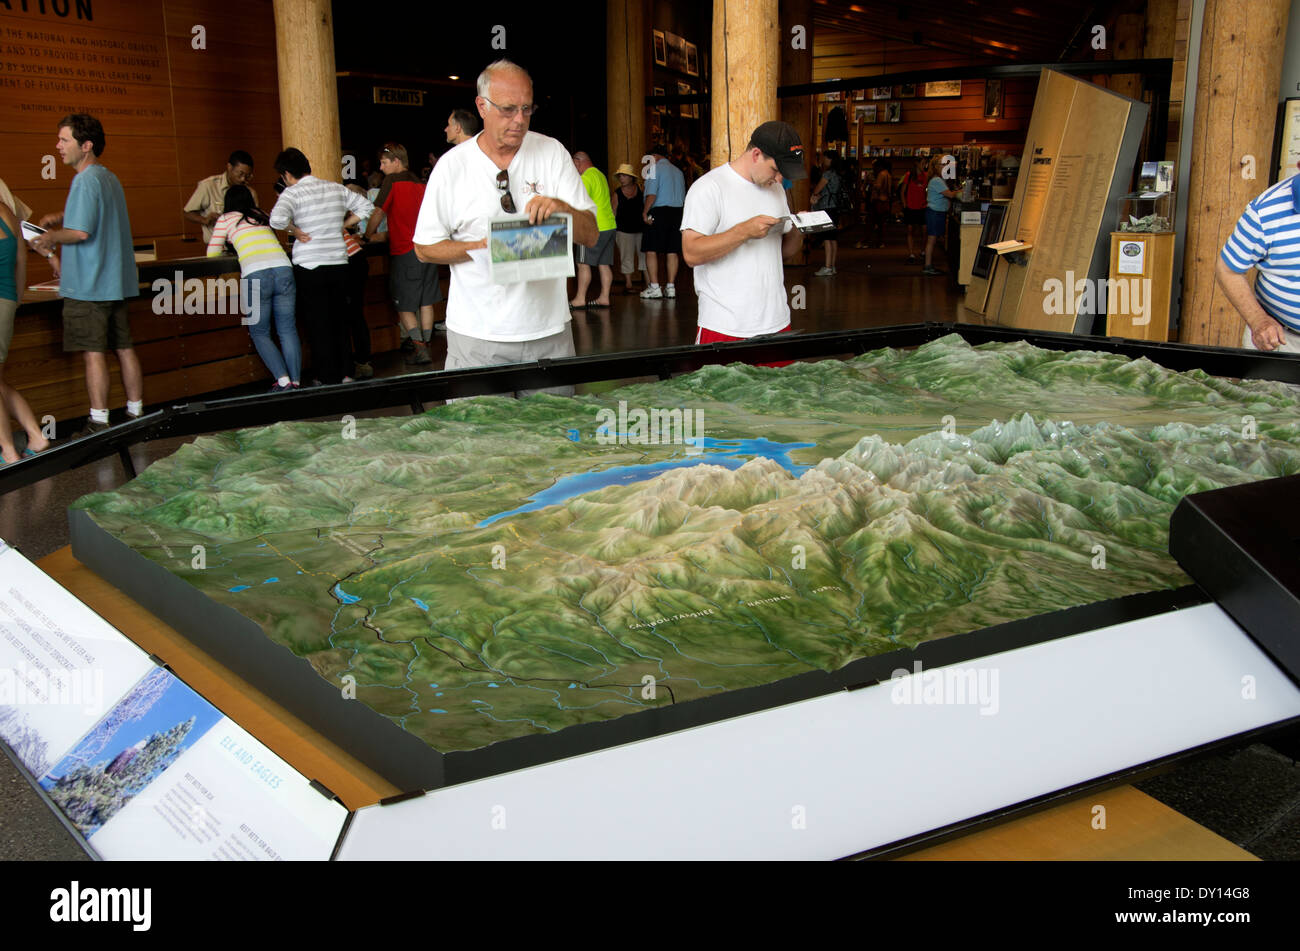 New visitors center, tourist study maps as they look at the large topographical map of the area - Stock Image